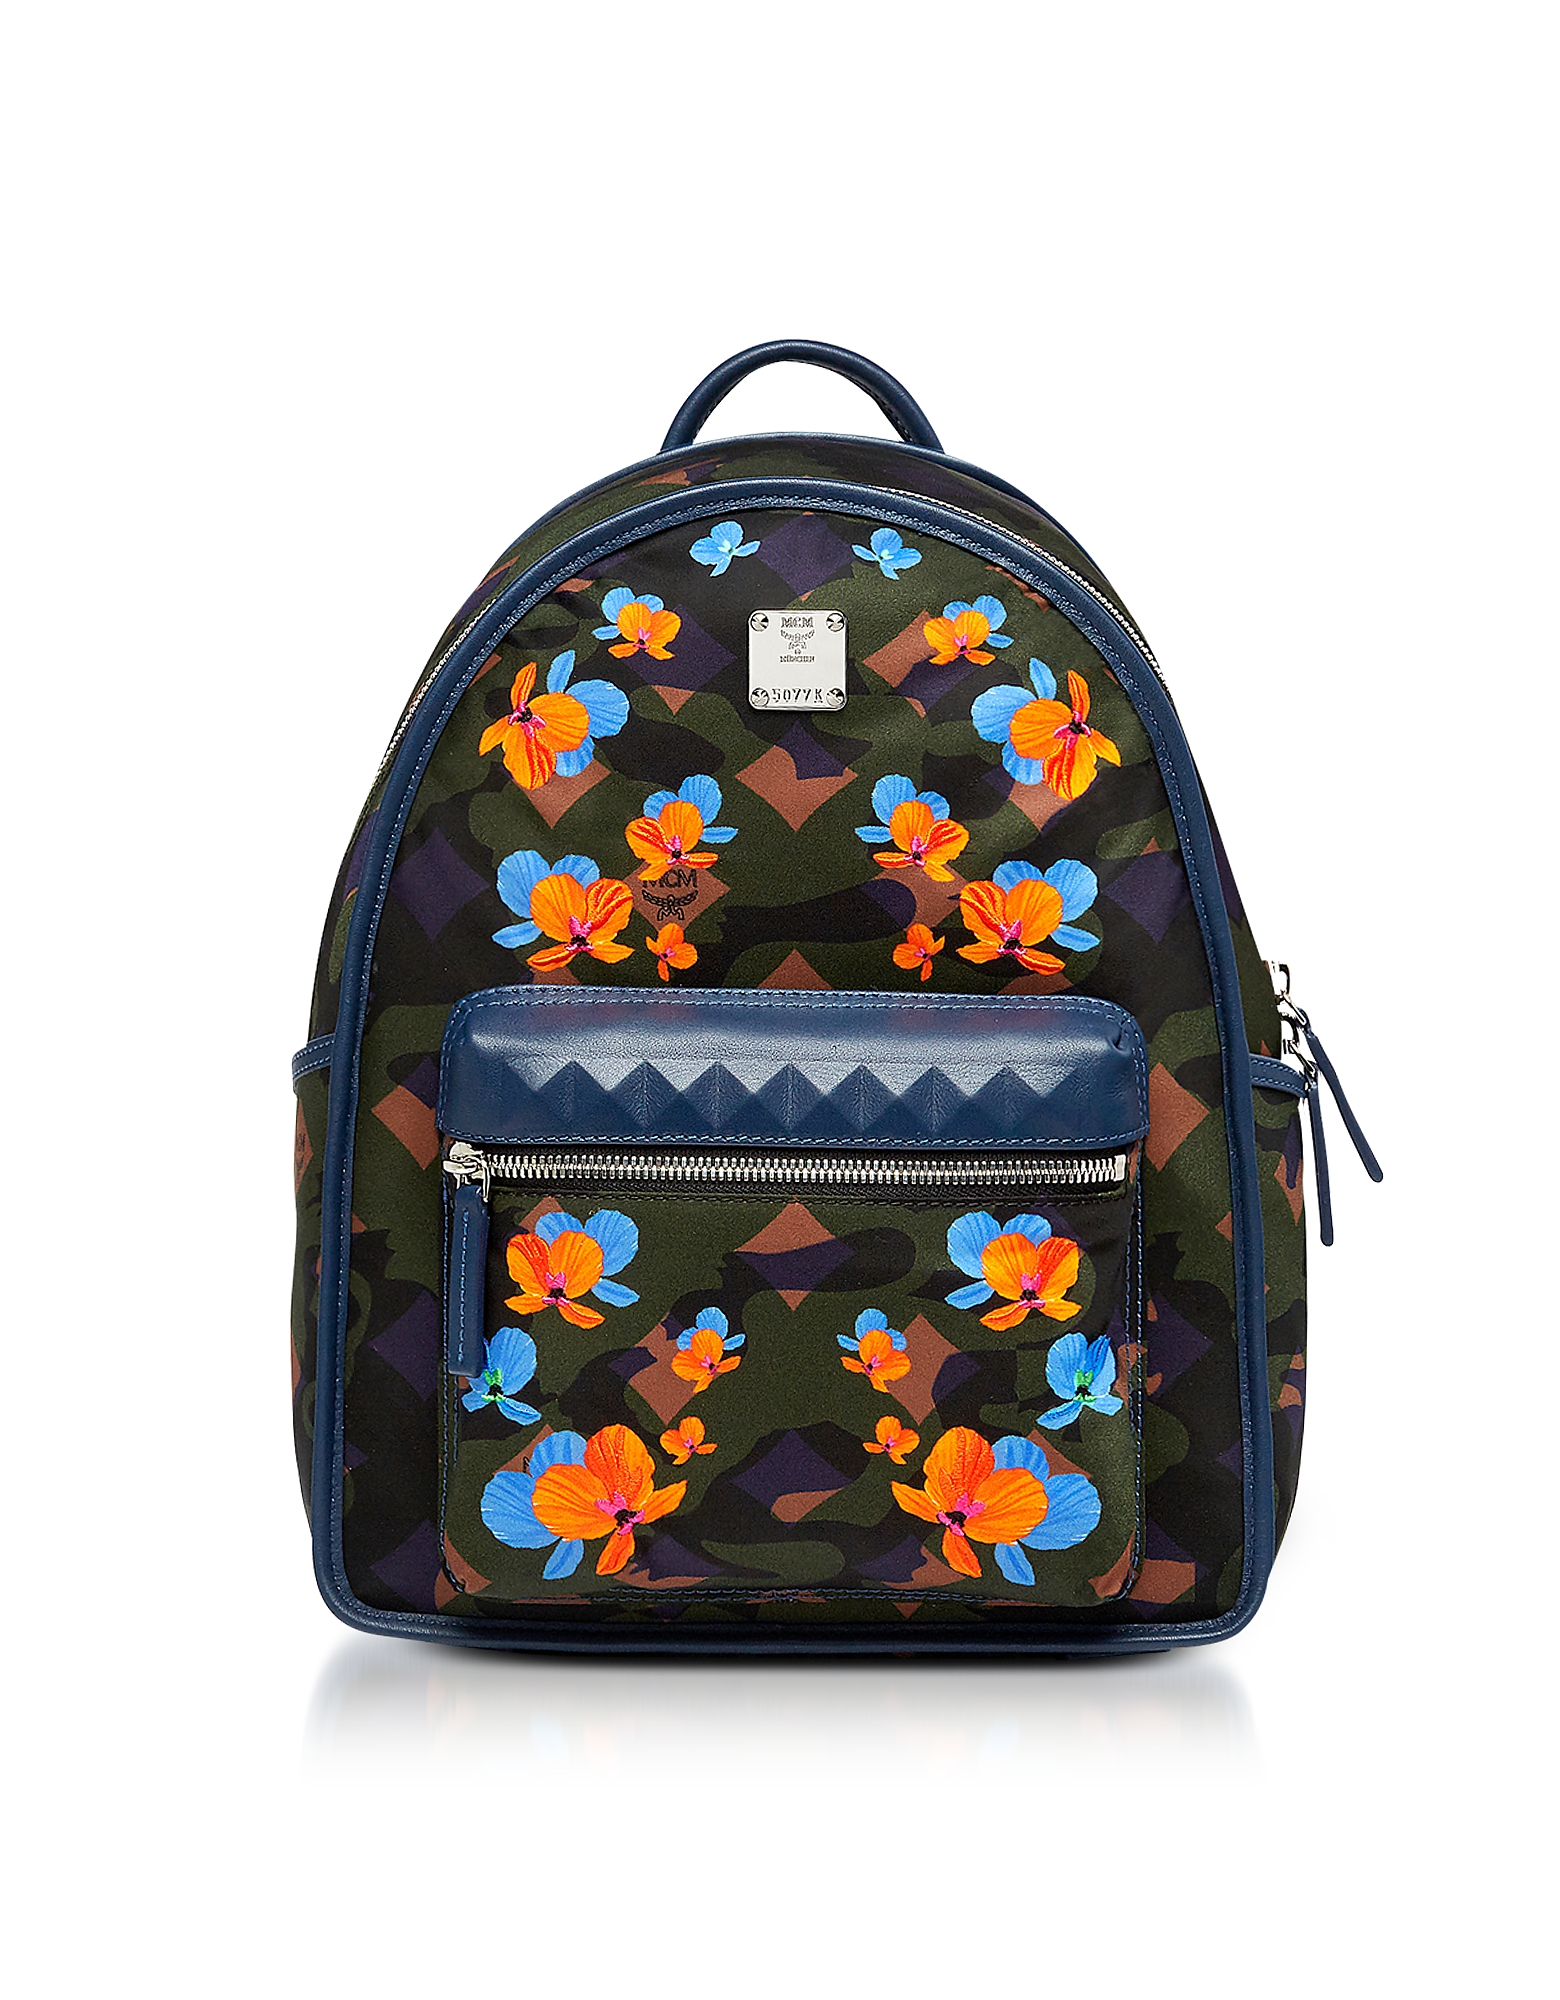 Dieter Loden Green Floral Camo Print Nylon Small Backpack